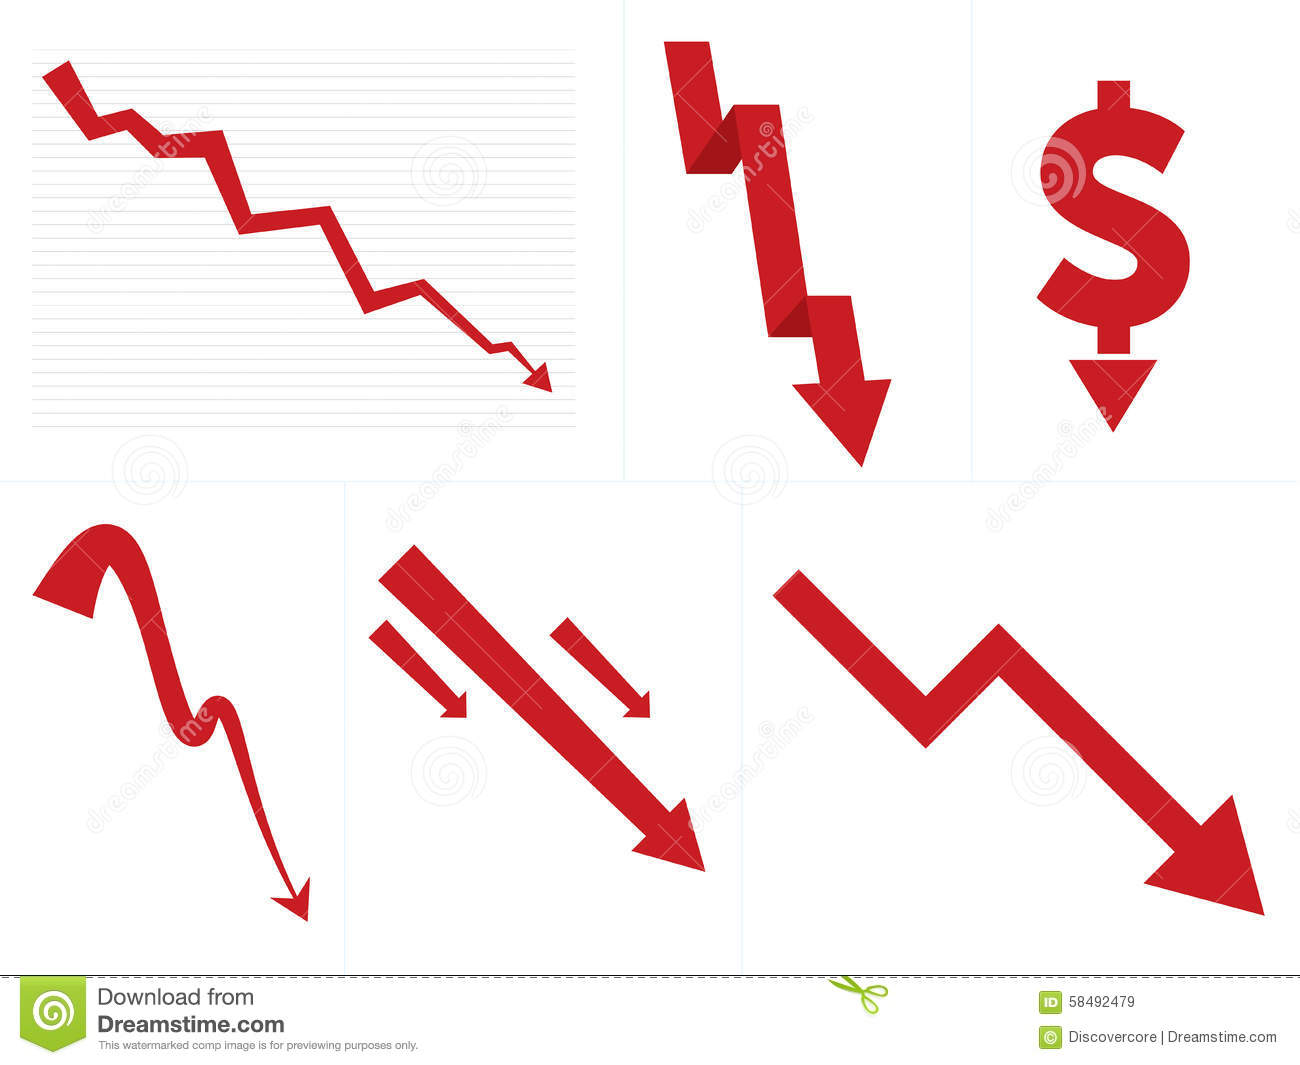 Stock Market Down/Crash Arrows Stock Vector - Image: 58492479